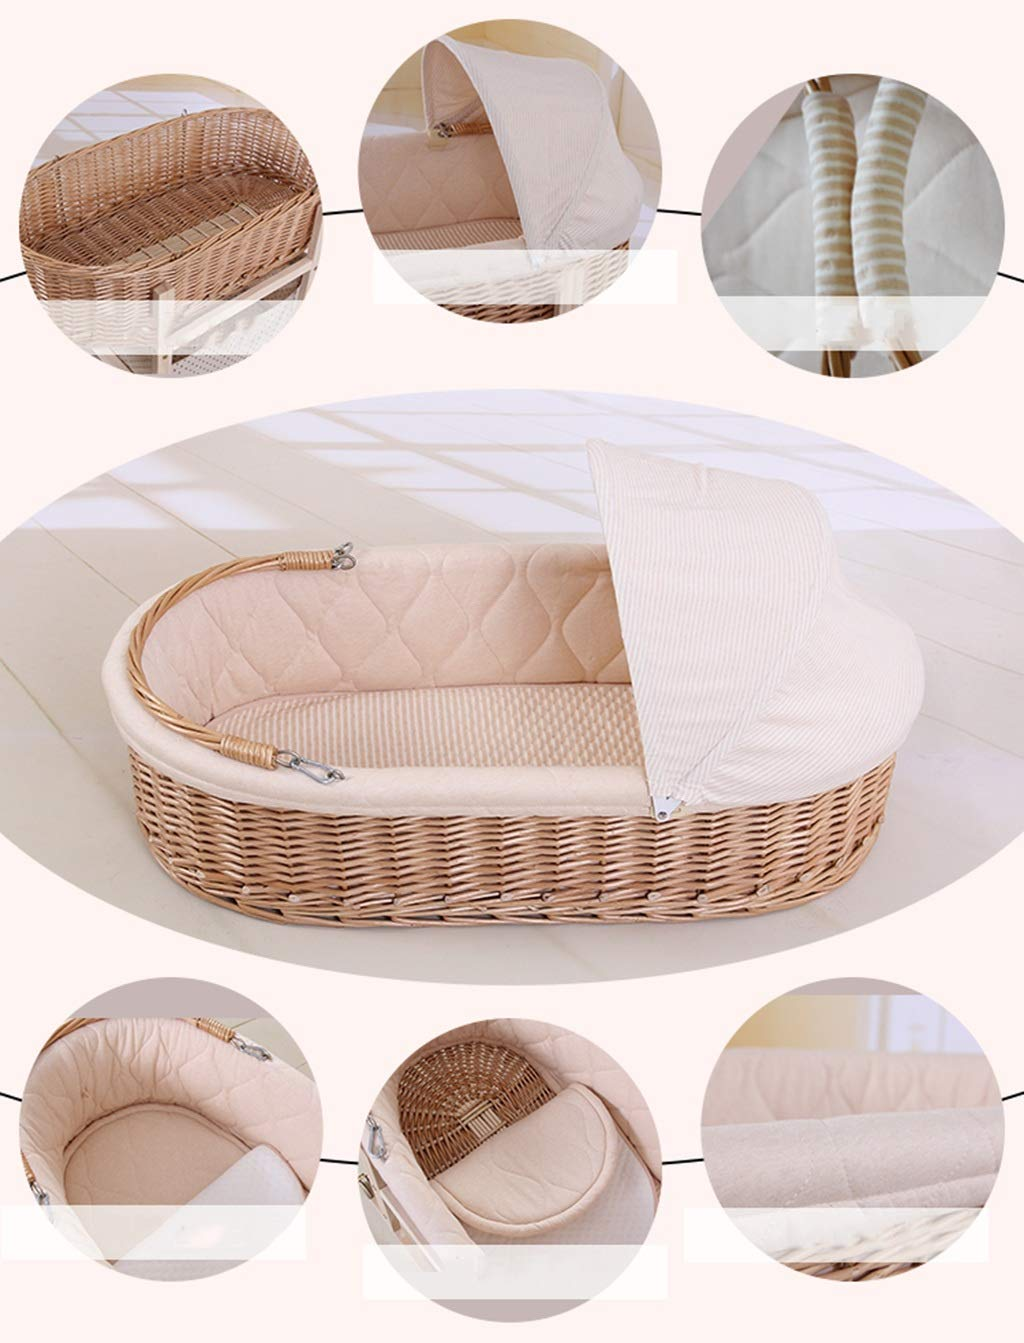 It Can Move Baby Cot, Multifunction Portable Cradle Portable Car Load Baby Travel Bed, 60 * 90CM (Size : 90 * 60CM) Zhao ♥ Product Name: Removable Baby Crib// Size: 60*90CM//Material: Wood; ♥Characteristics: Sturdy detachable beam, can be pushed and pushed double mode, mosquito net and sunshade, lower storage pocket, high quality colored cotton comfortable mattress, soft and smooth, giving baby comfort and enjoyment; ♥Bionic uterus design, give your baby enough safety, let the baby sleep sweetly; 4